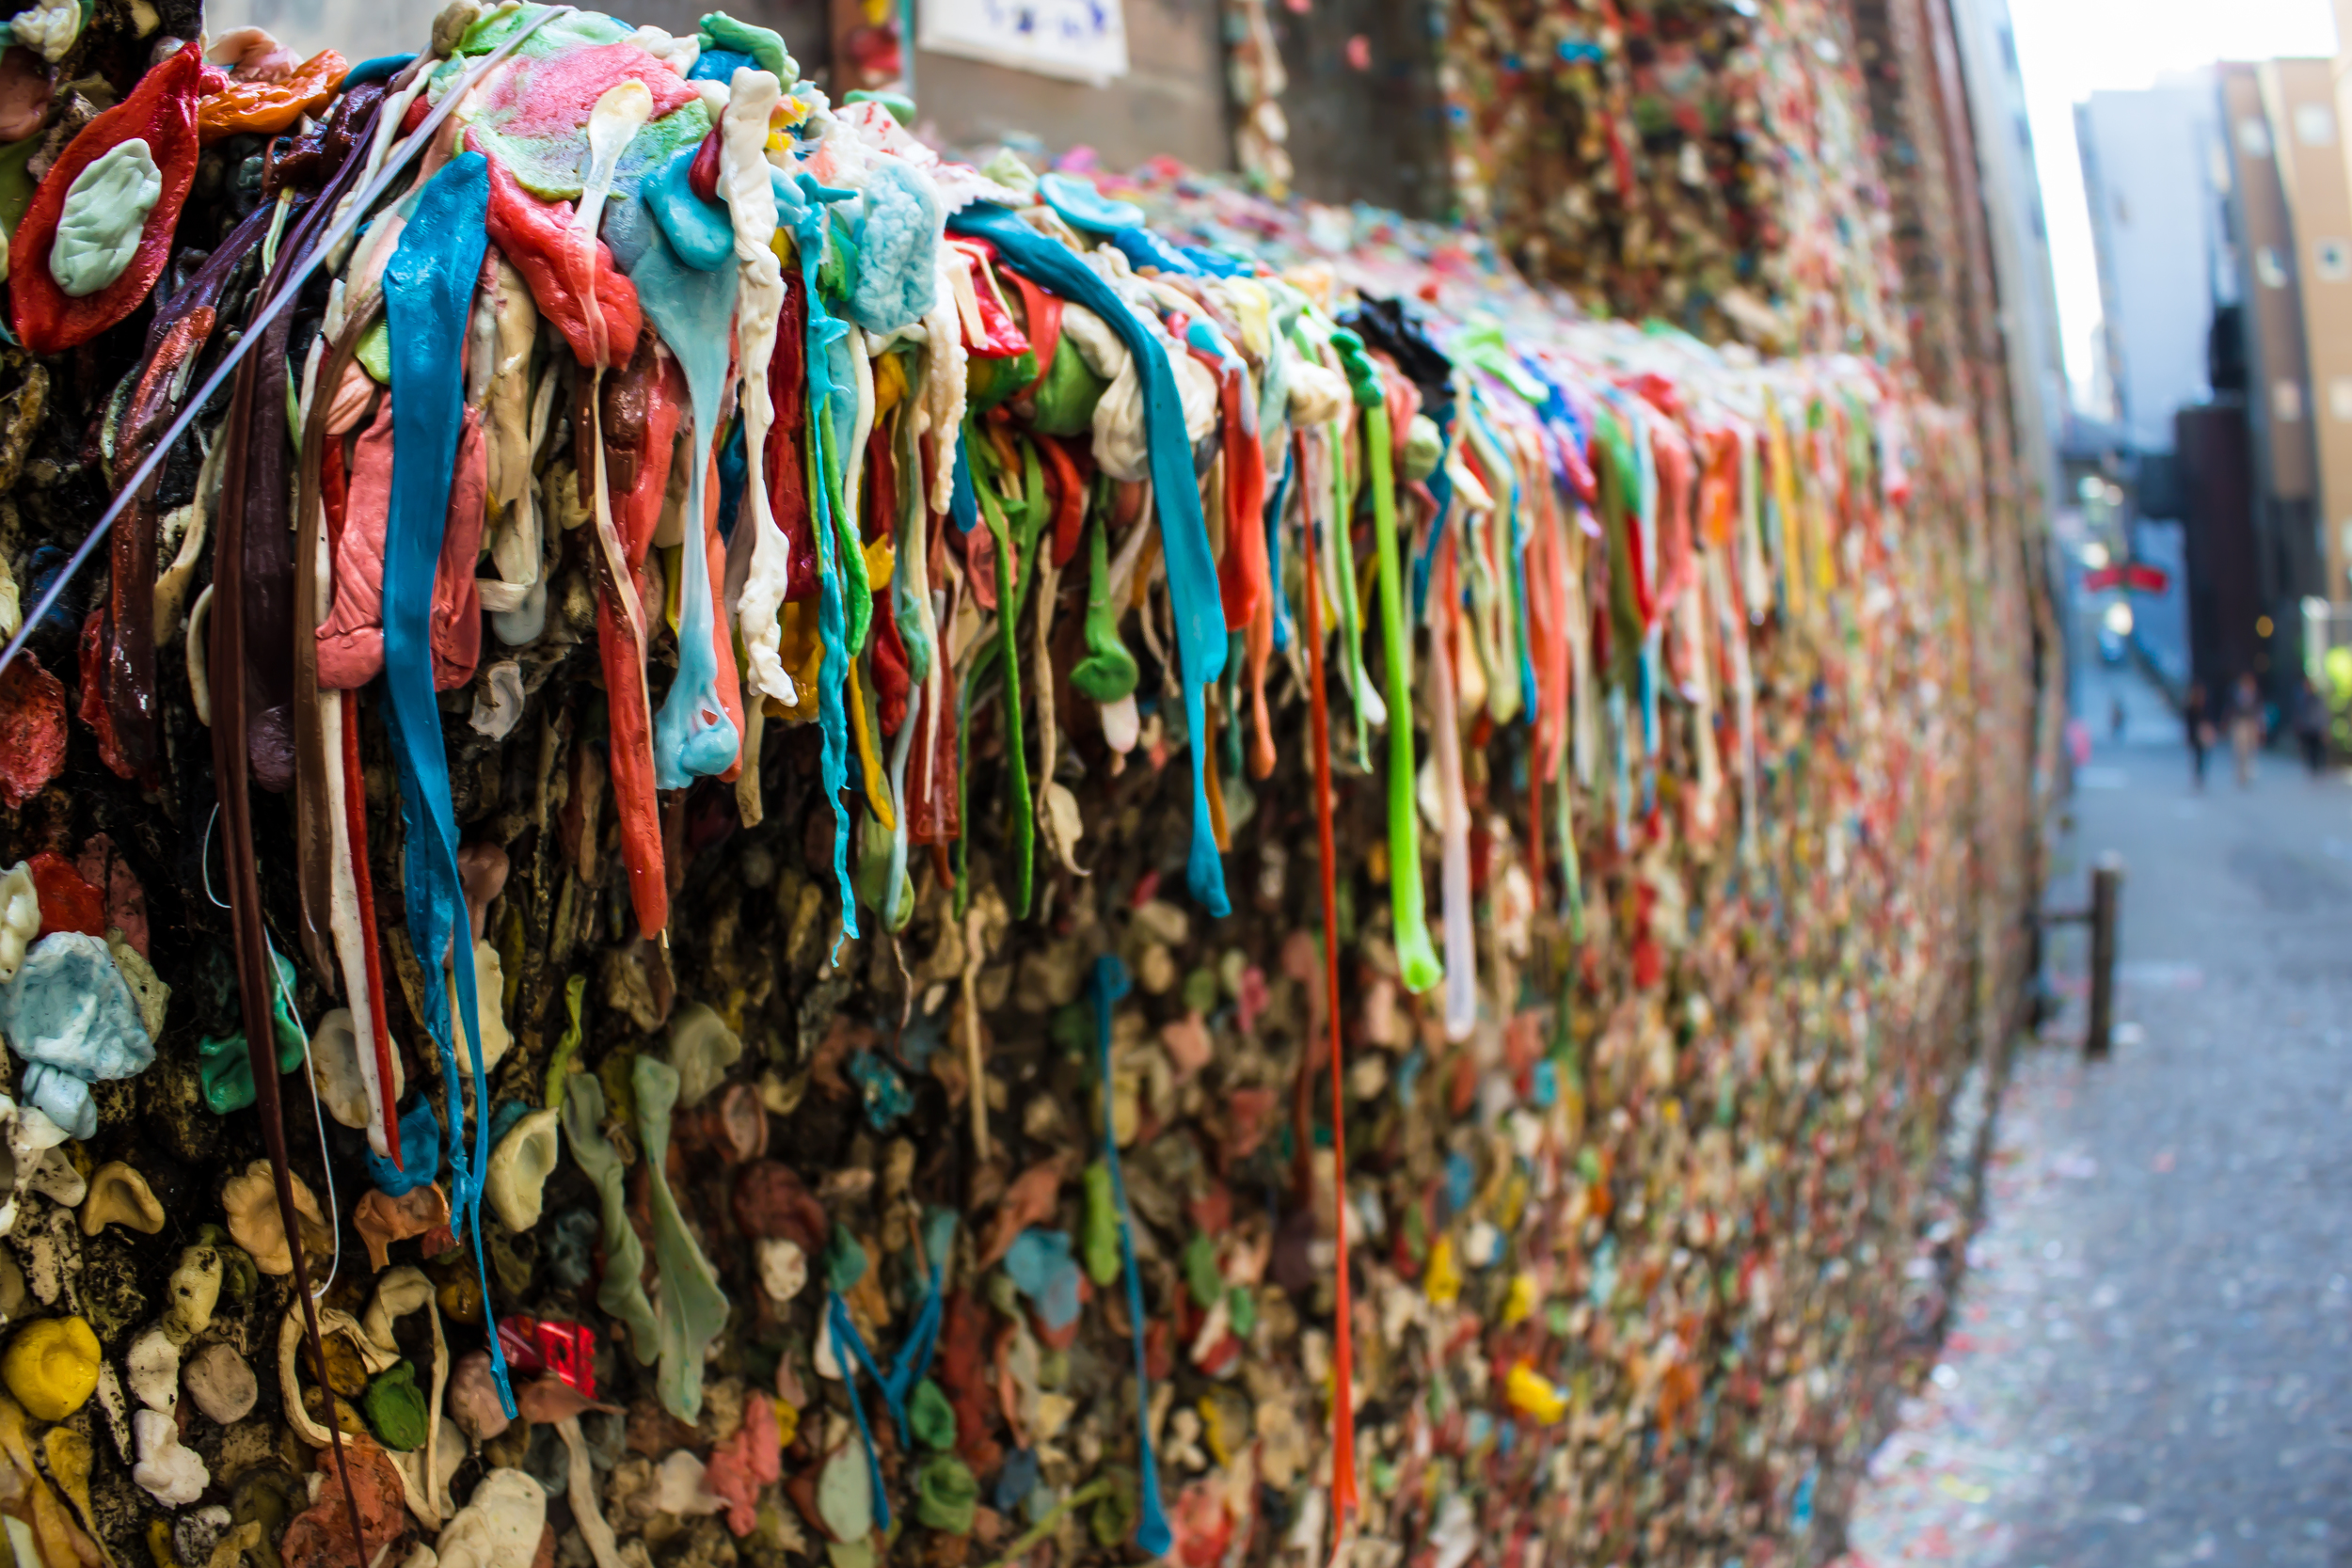 Gum wall before 2015 clean up